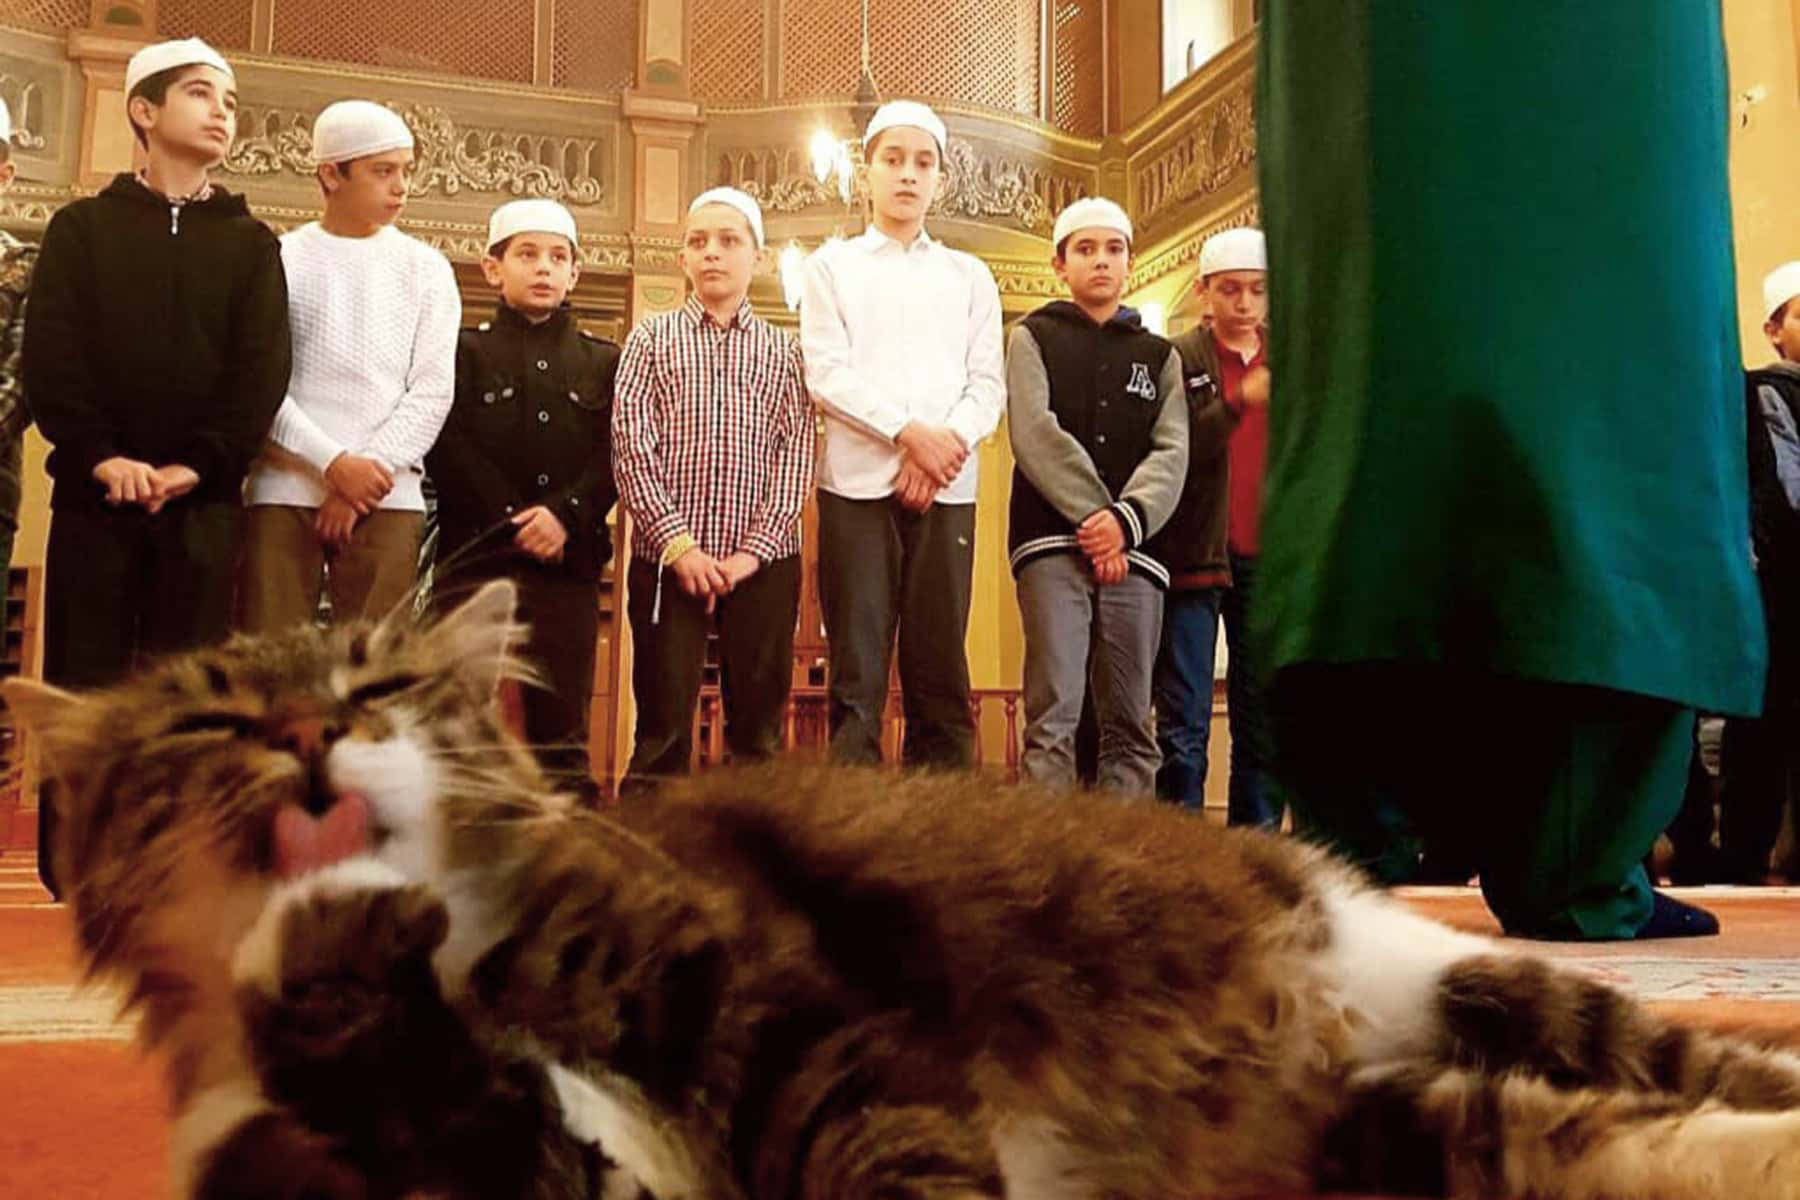 Catstantinople: Imam welcomes stray cats into Mosque to keep